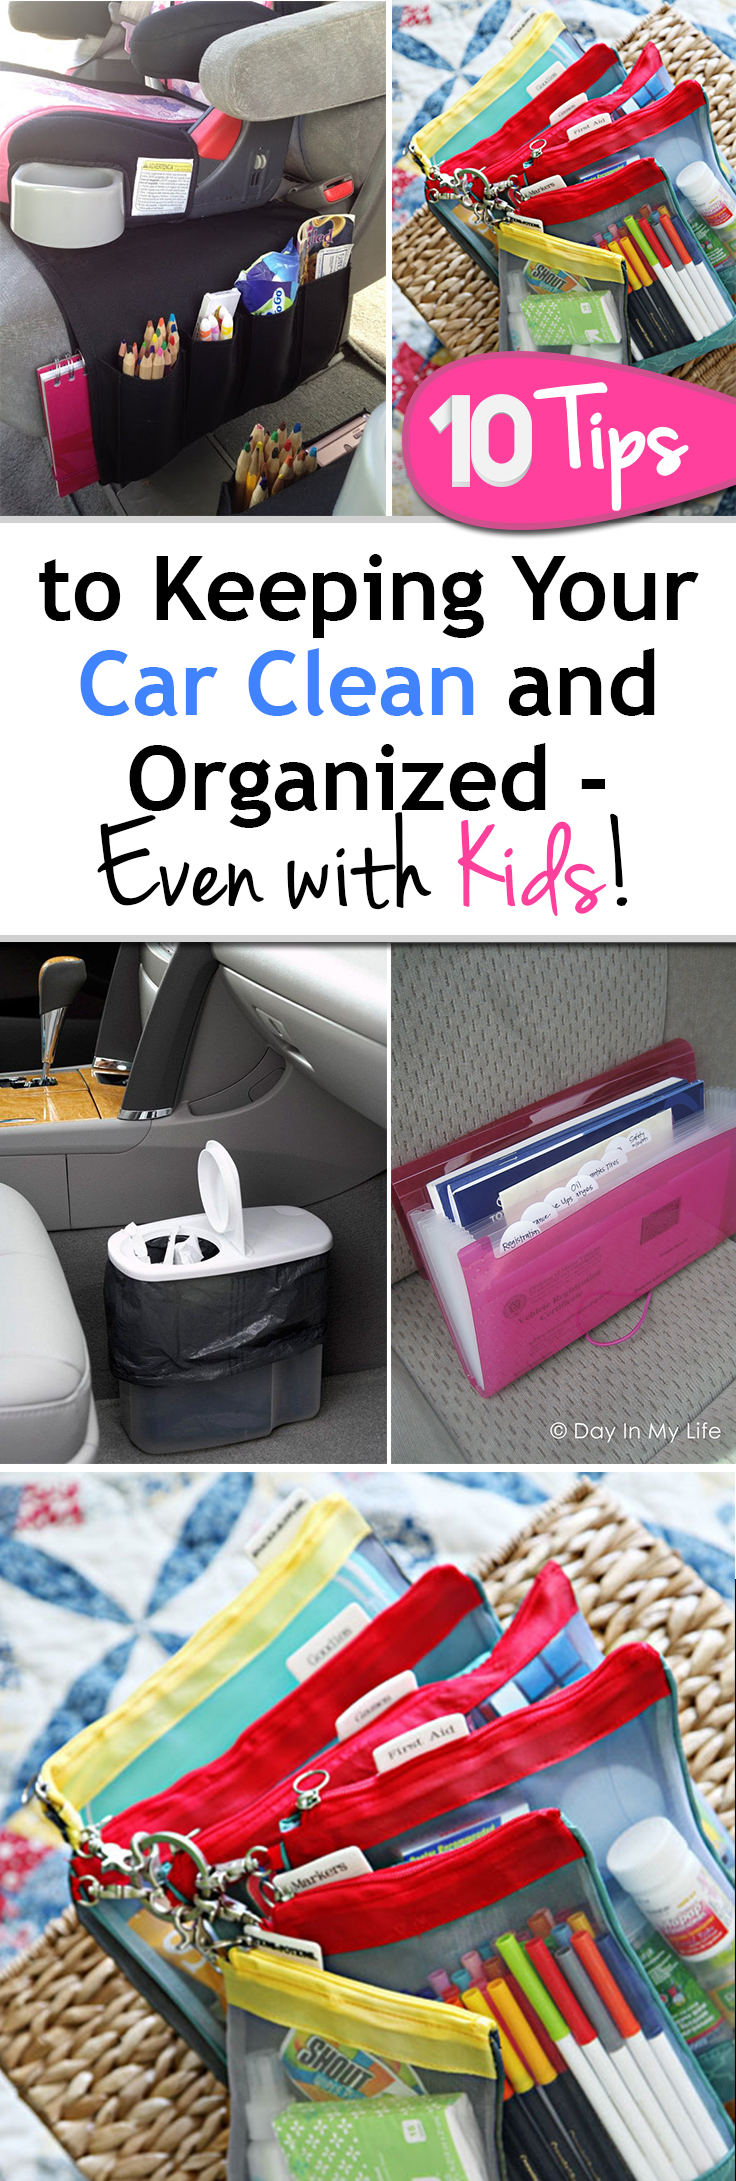 Car organization, car cleaning tips, car hacks, keep your car clean, popular pin, cleaning with kids.